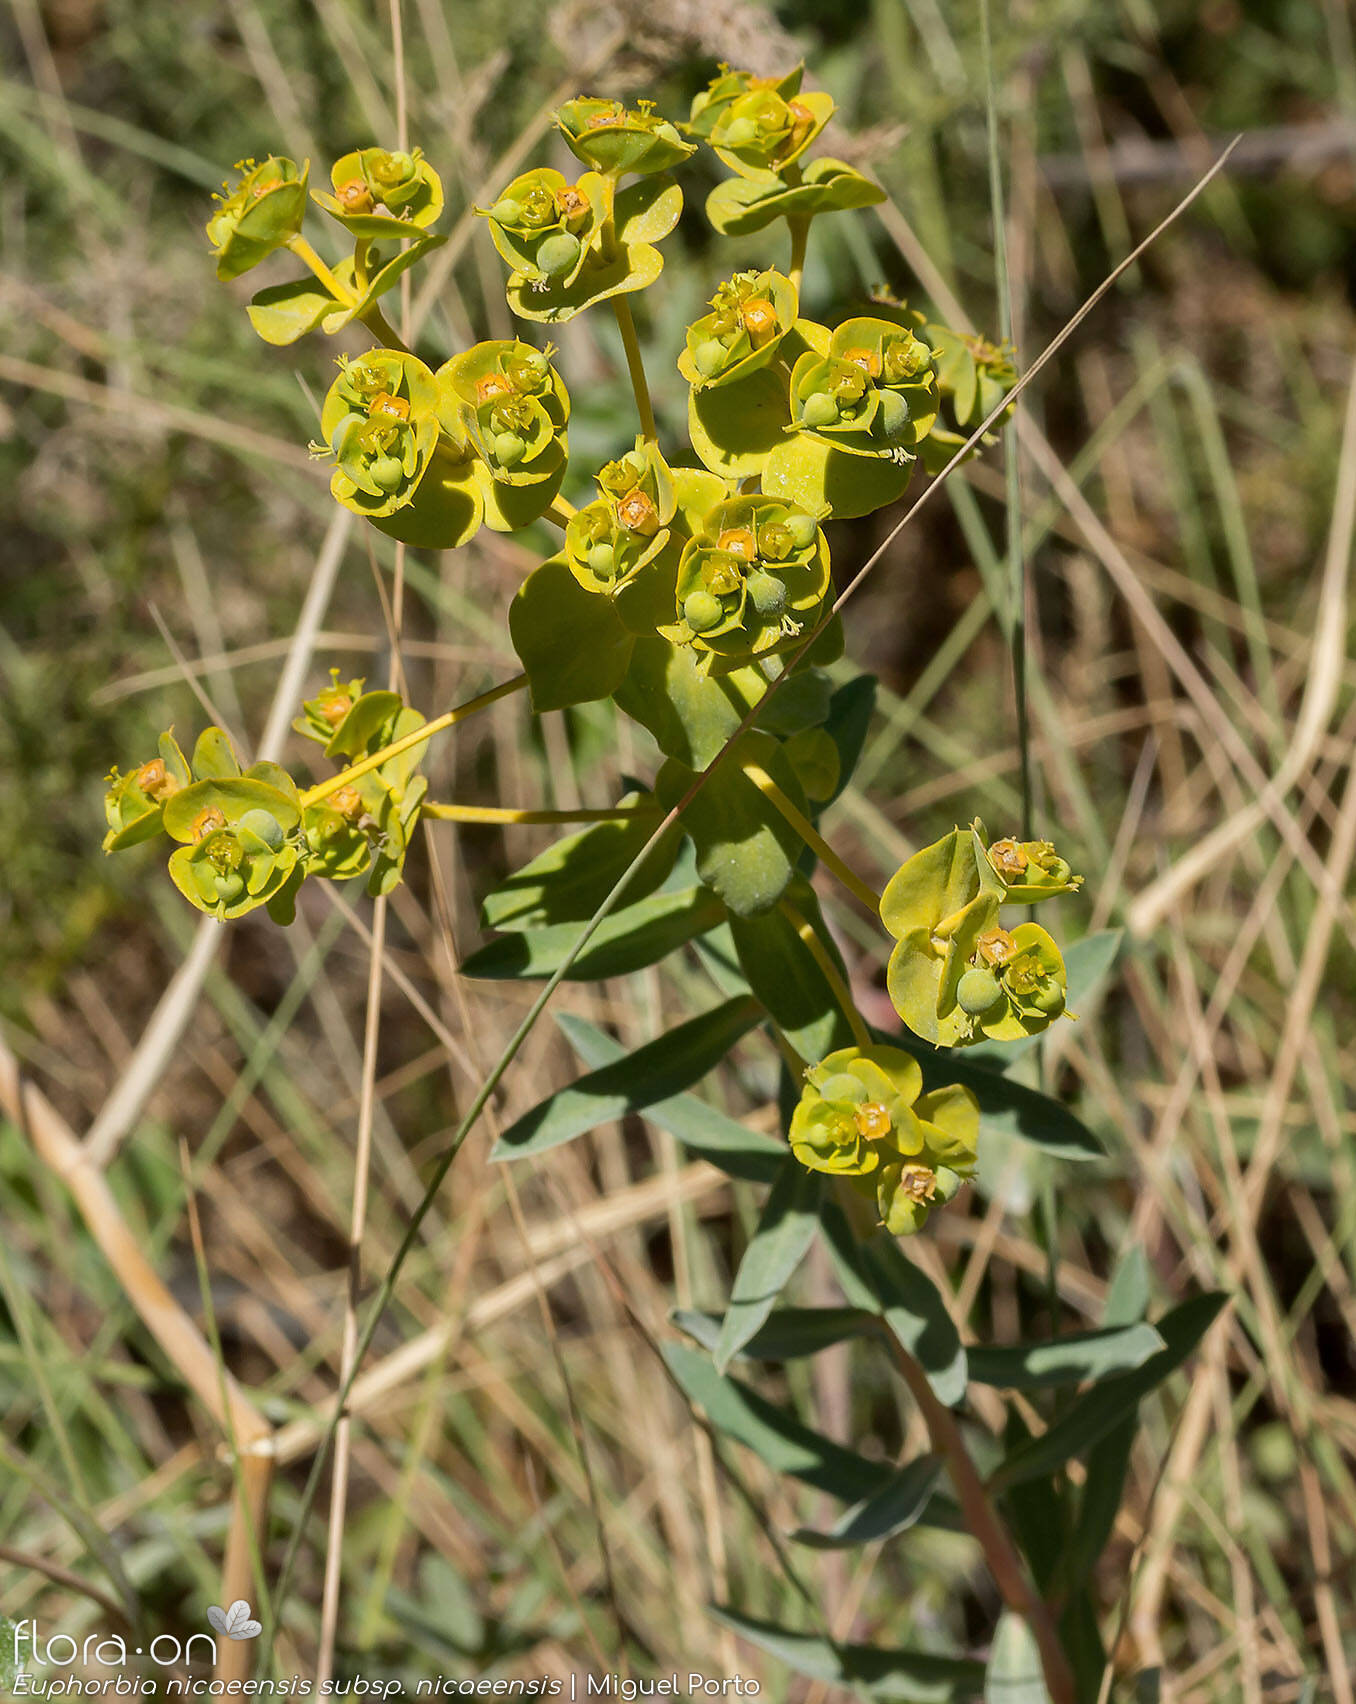 Euphorbia nicaeensis nicaeensis - Flor (geral) | Miguel Porto; CC BY-NC 4.0